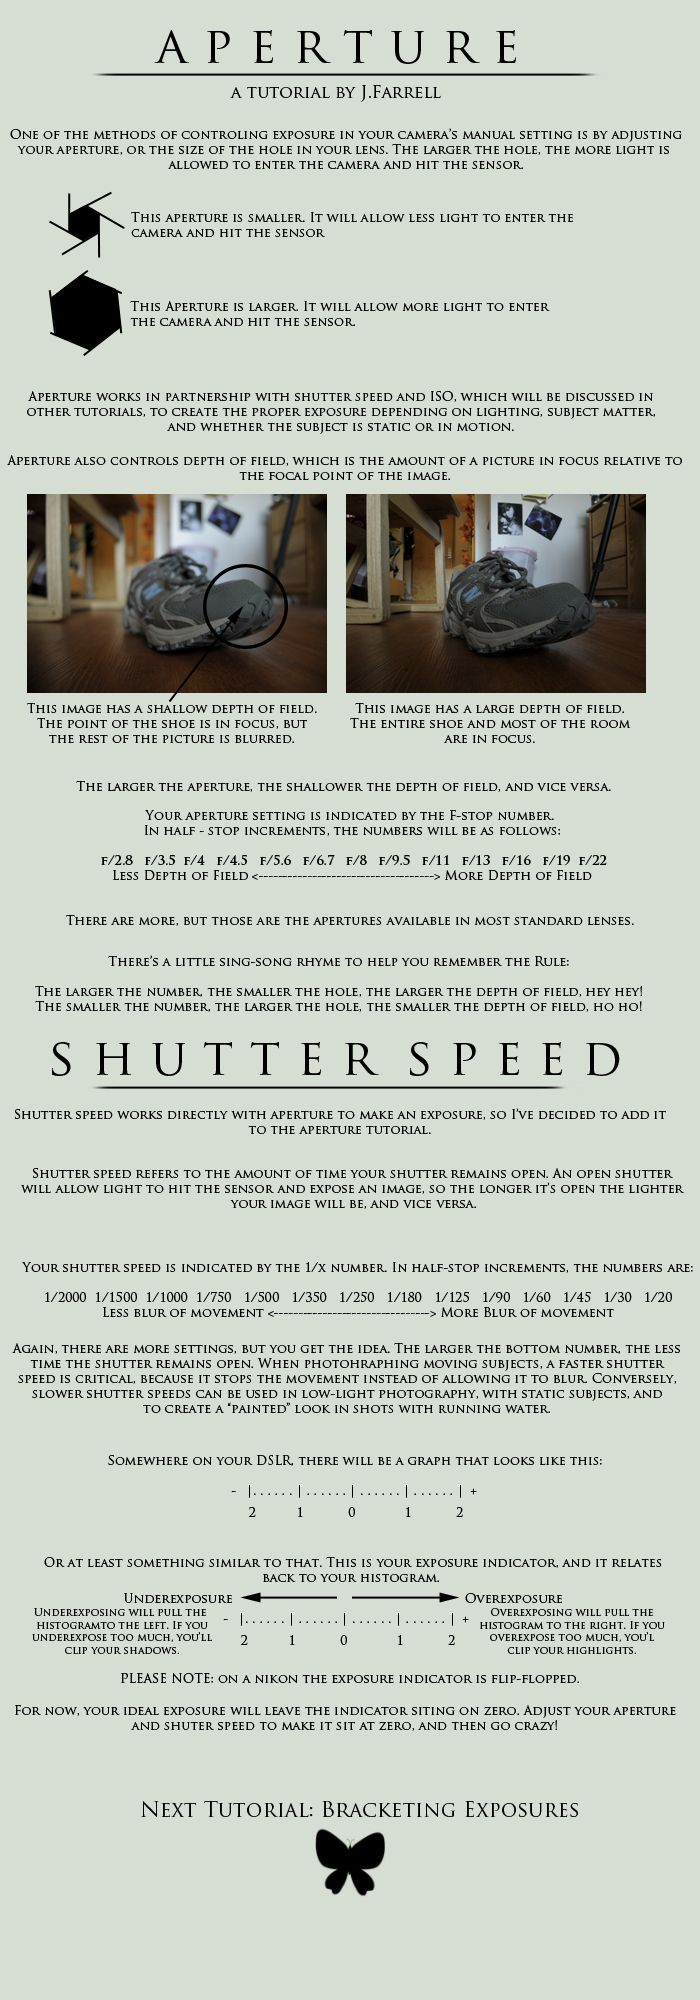 Aperture and Shutter Speed by ~J-Farrell